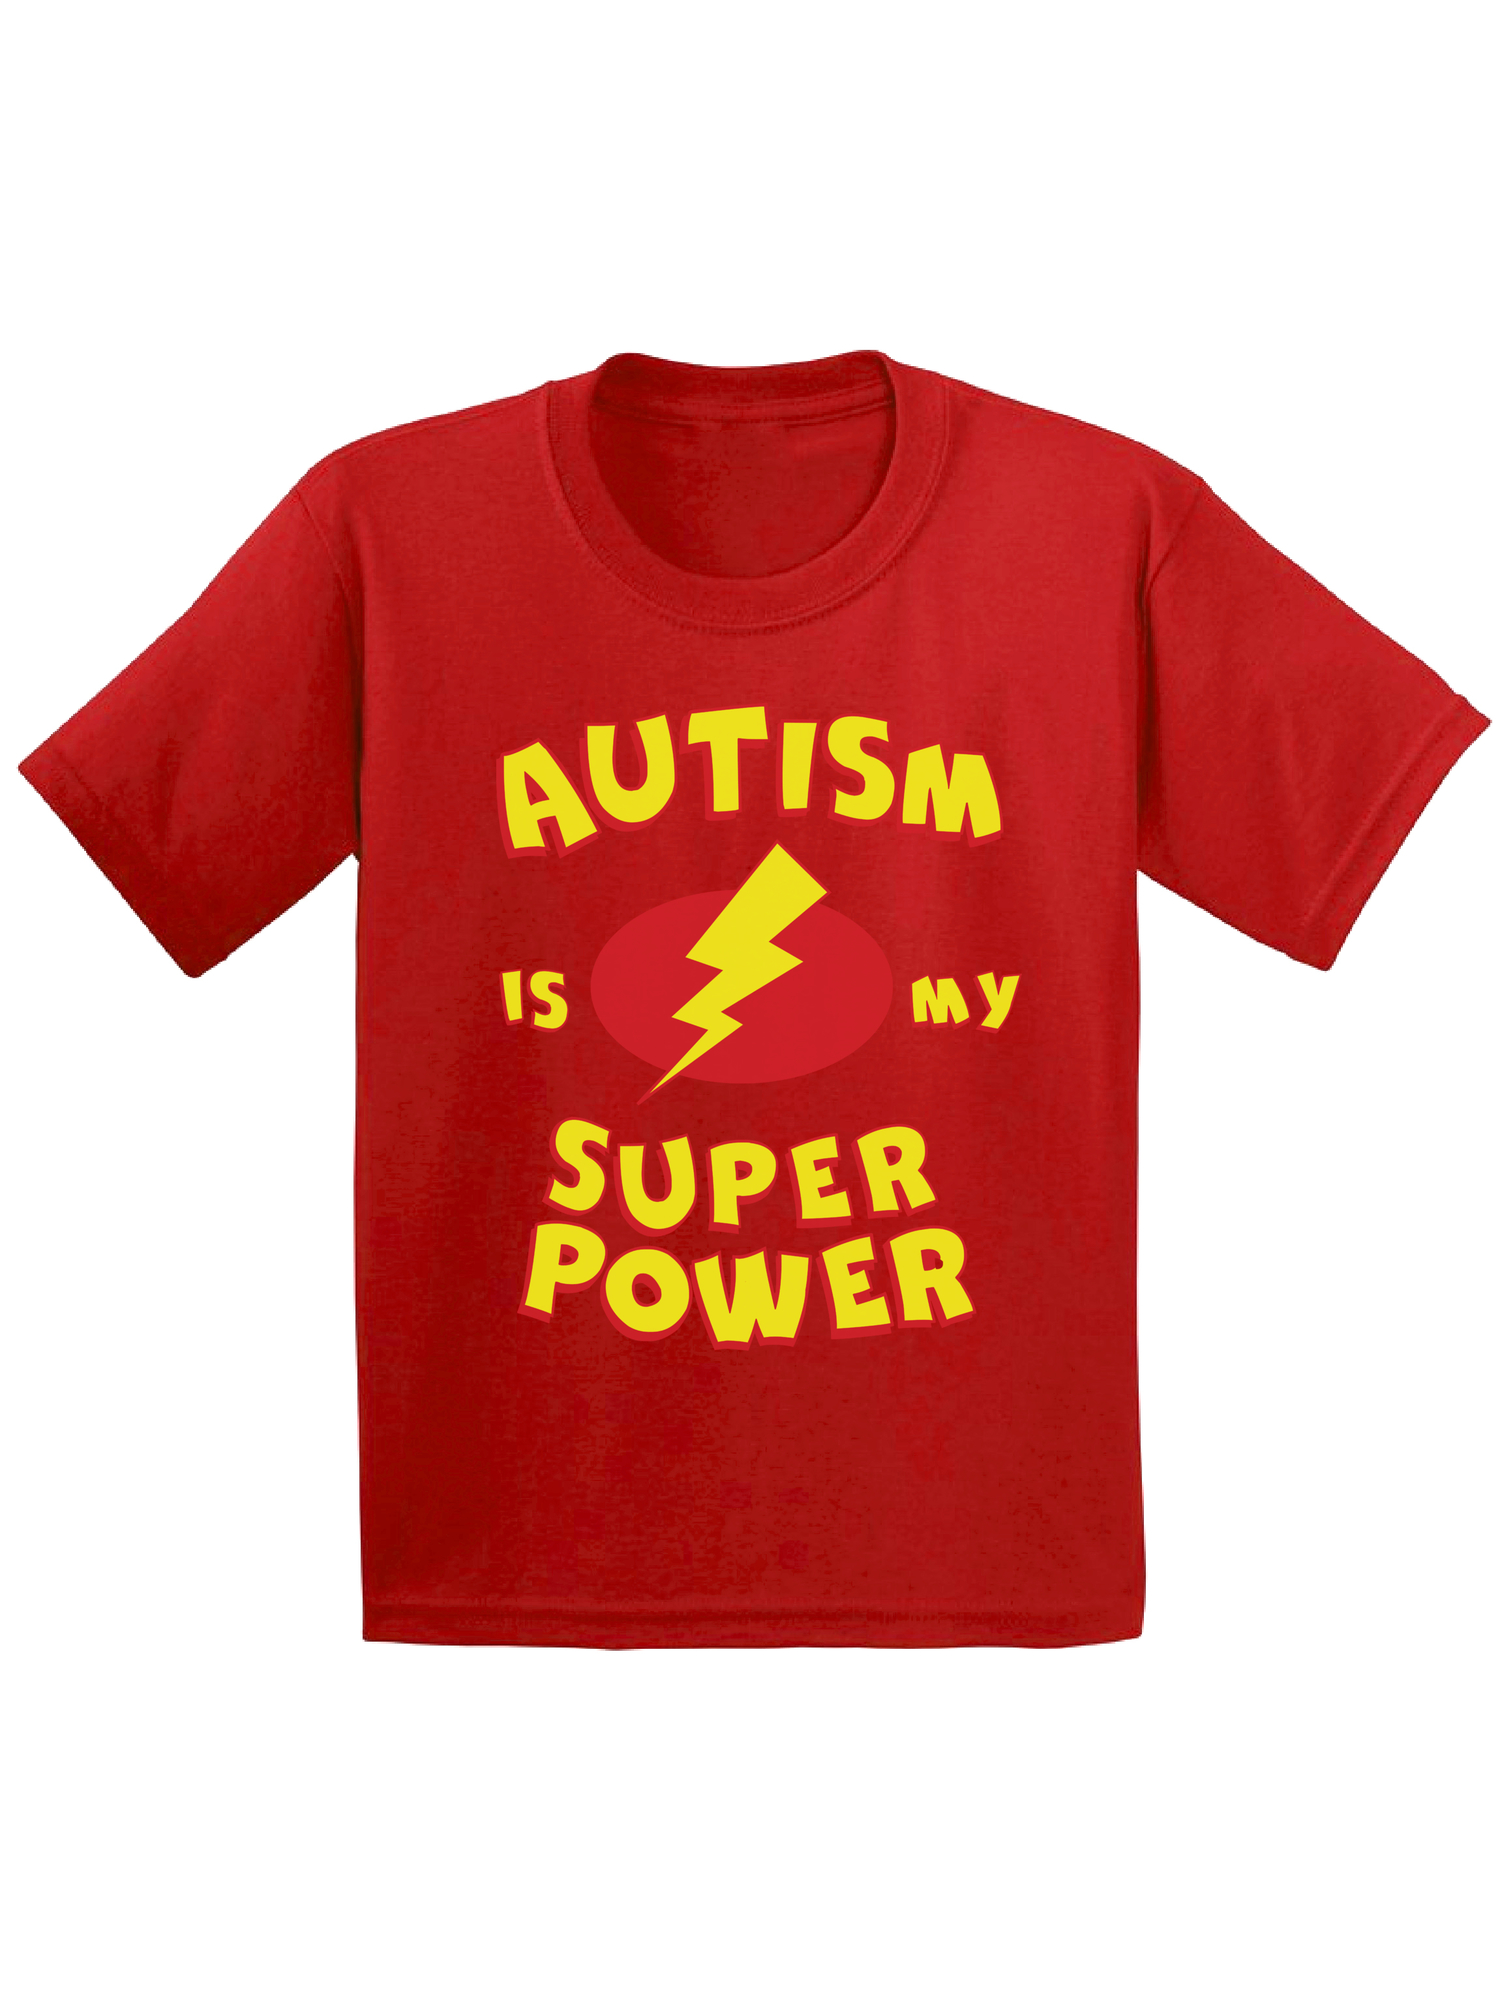 Awkward Styles Autism Is My Super Power Toddler Shirt Autism Awareness Shirts for Kids Autism Shirt for Boys Autism Is My Super Power Shirt for Girls Autism Gifts for Toddlers Support Autism Tee